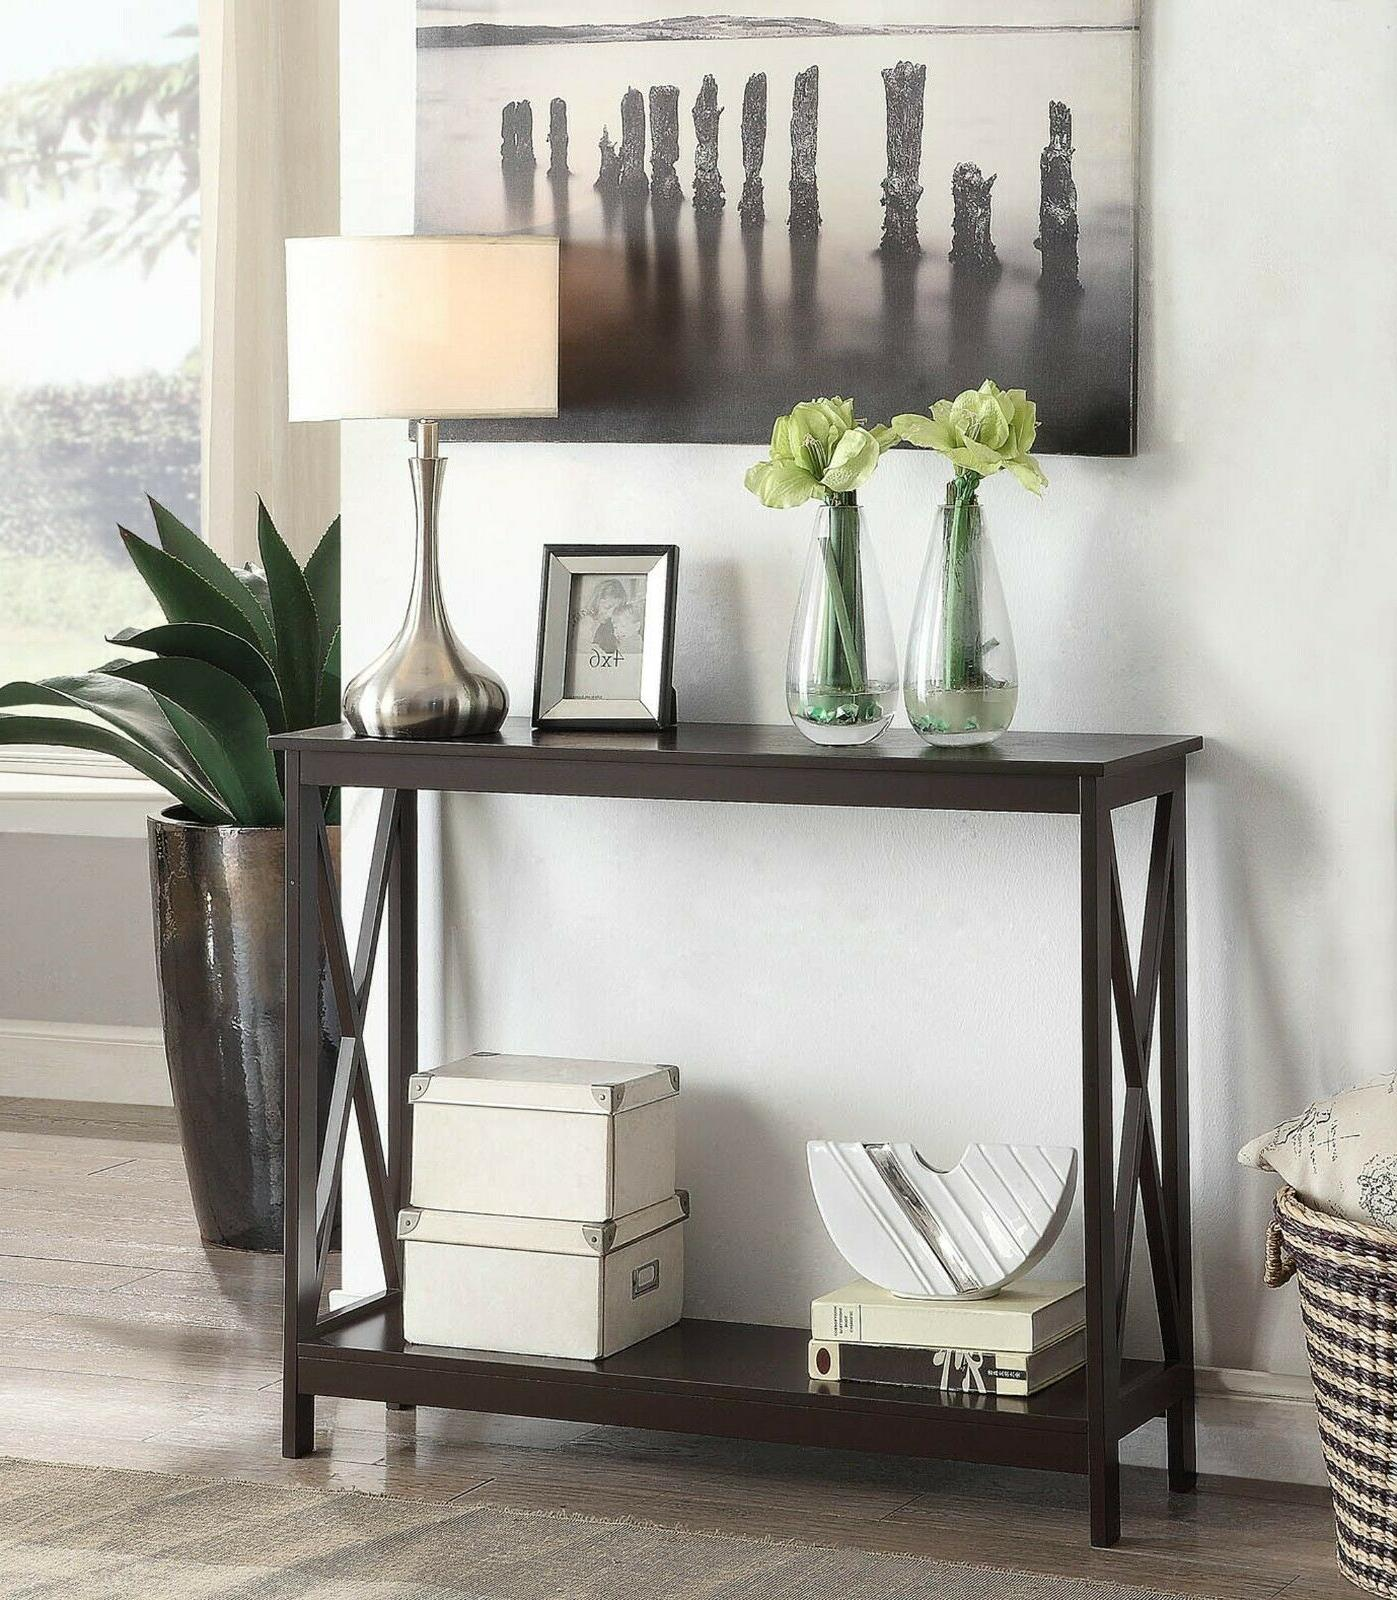 Wood Table Tables Accent Entryway Foyer Shelf